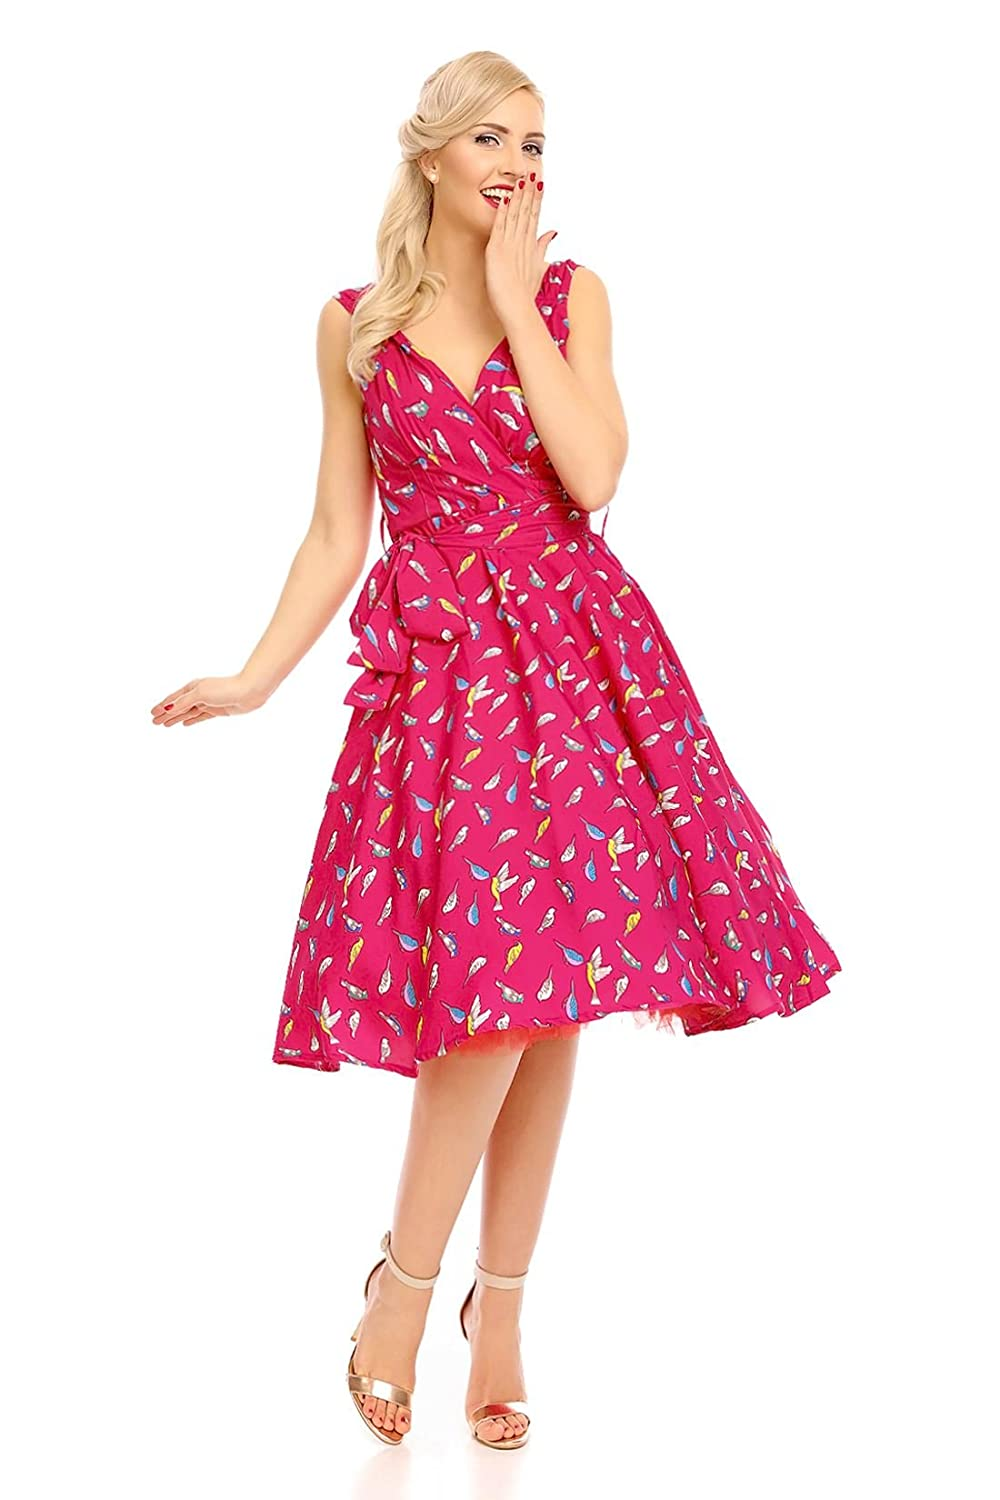 Looking Glam Retro Vintage 1950s PIN-UP Fiesta Vestido Con Vuelo ...